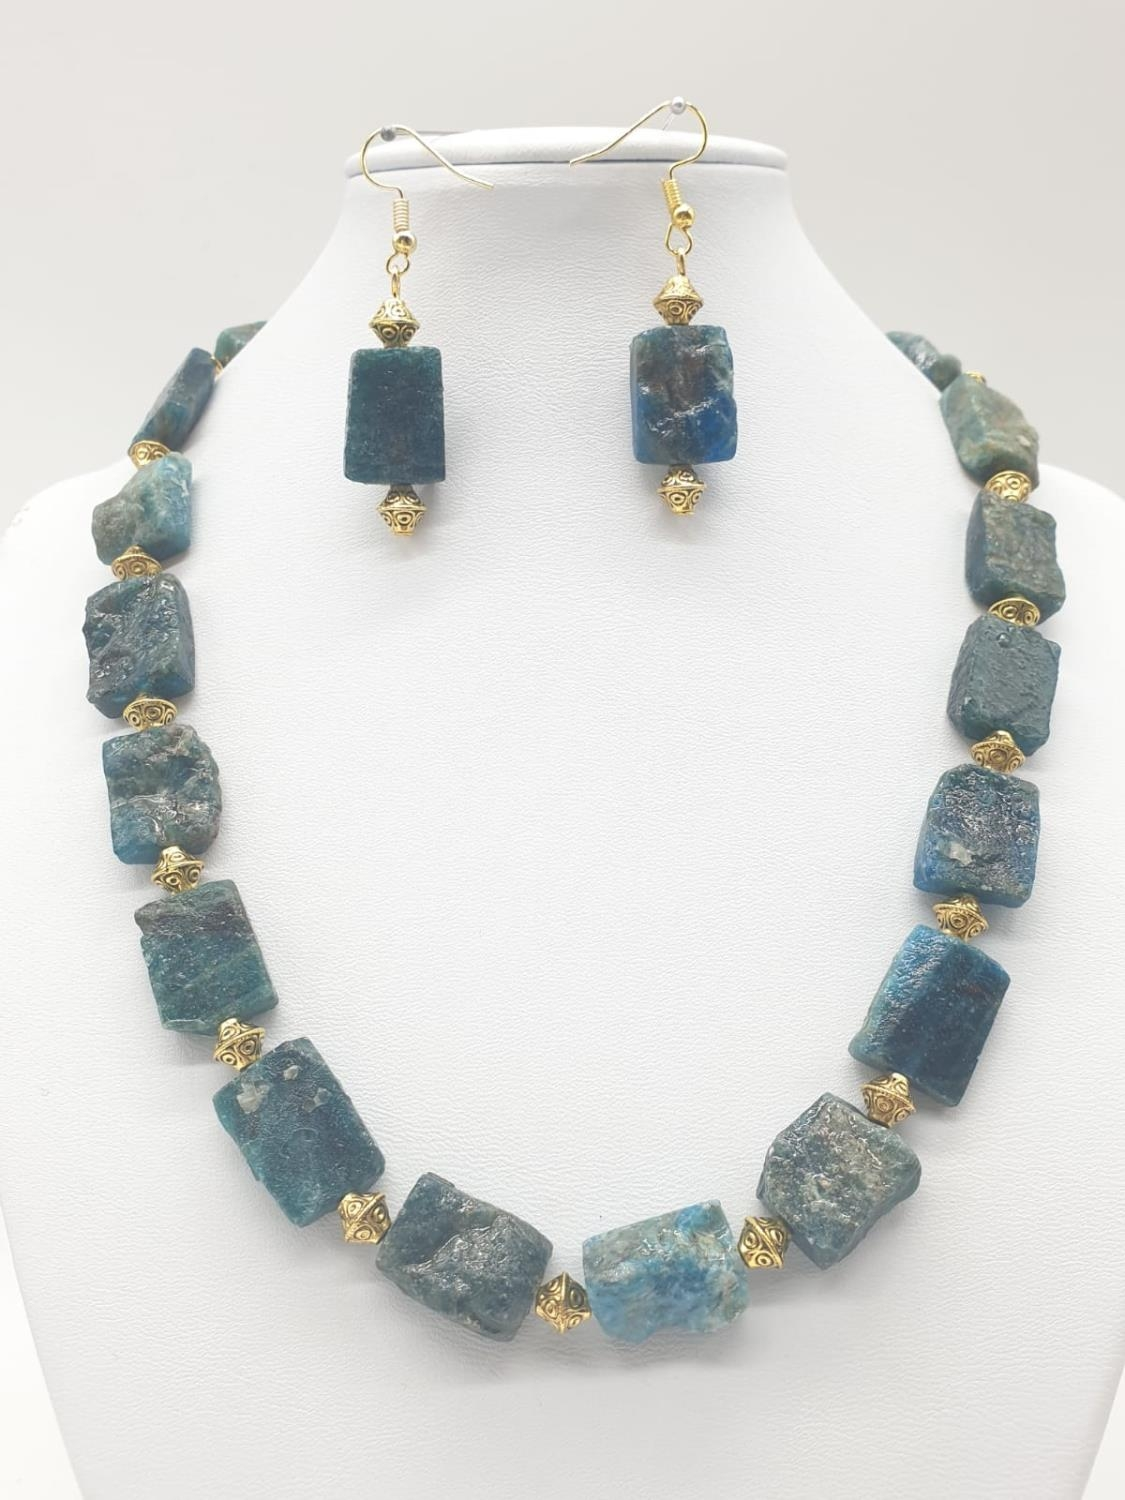 A necklace and earrings set made of Brazilian bluish apatite in its natural state. In a gift box,